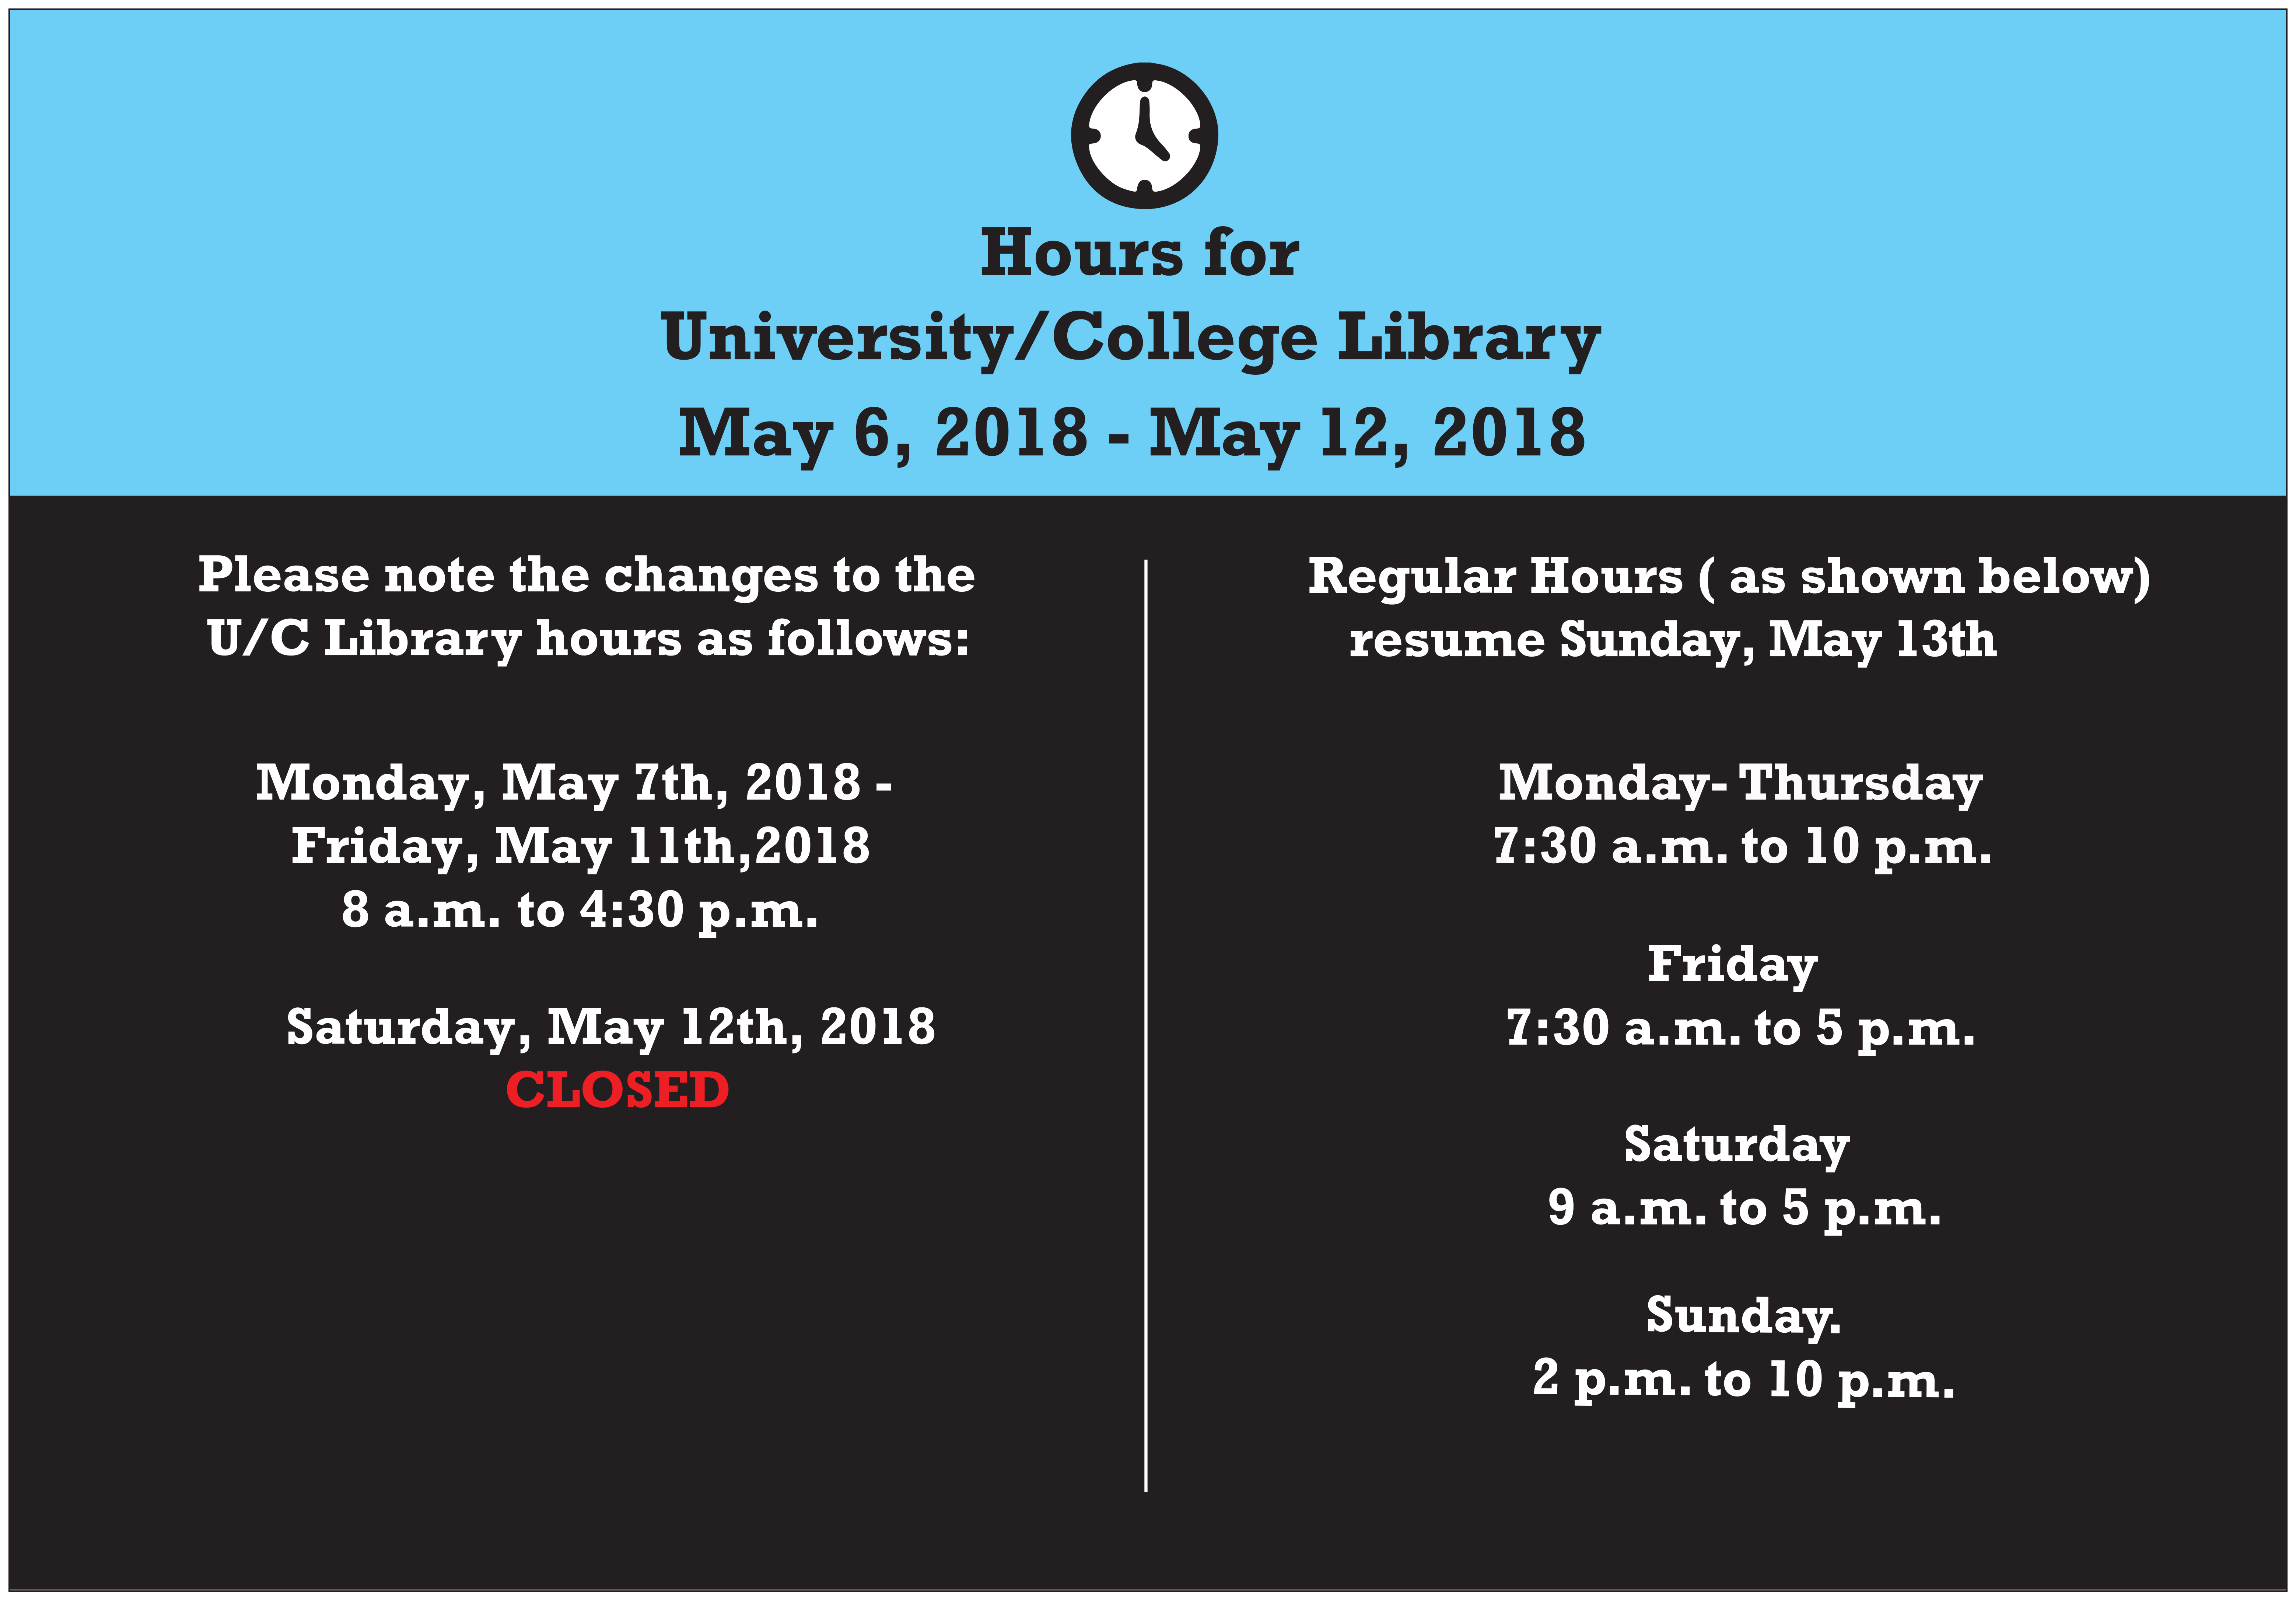 Library closes at 4:30pm